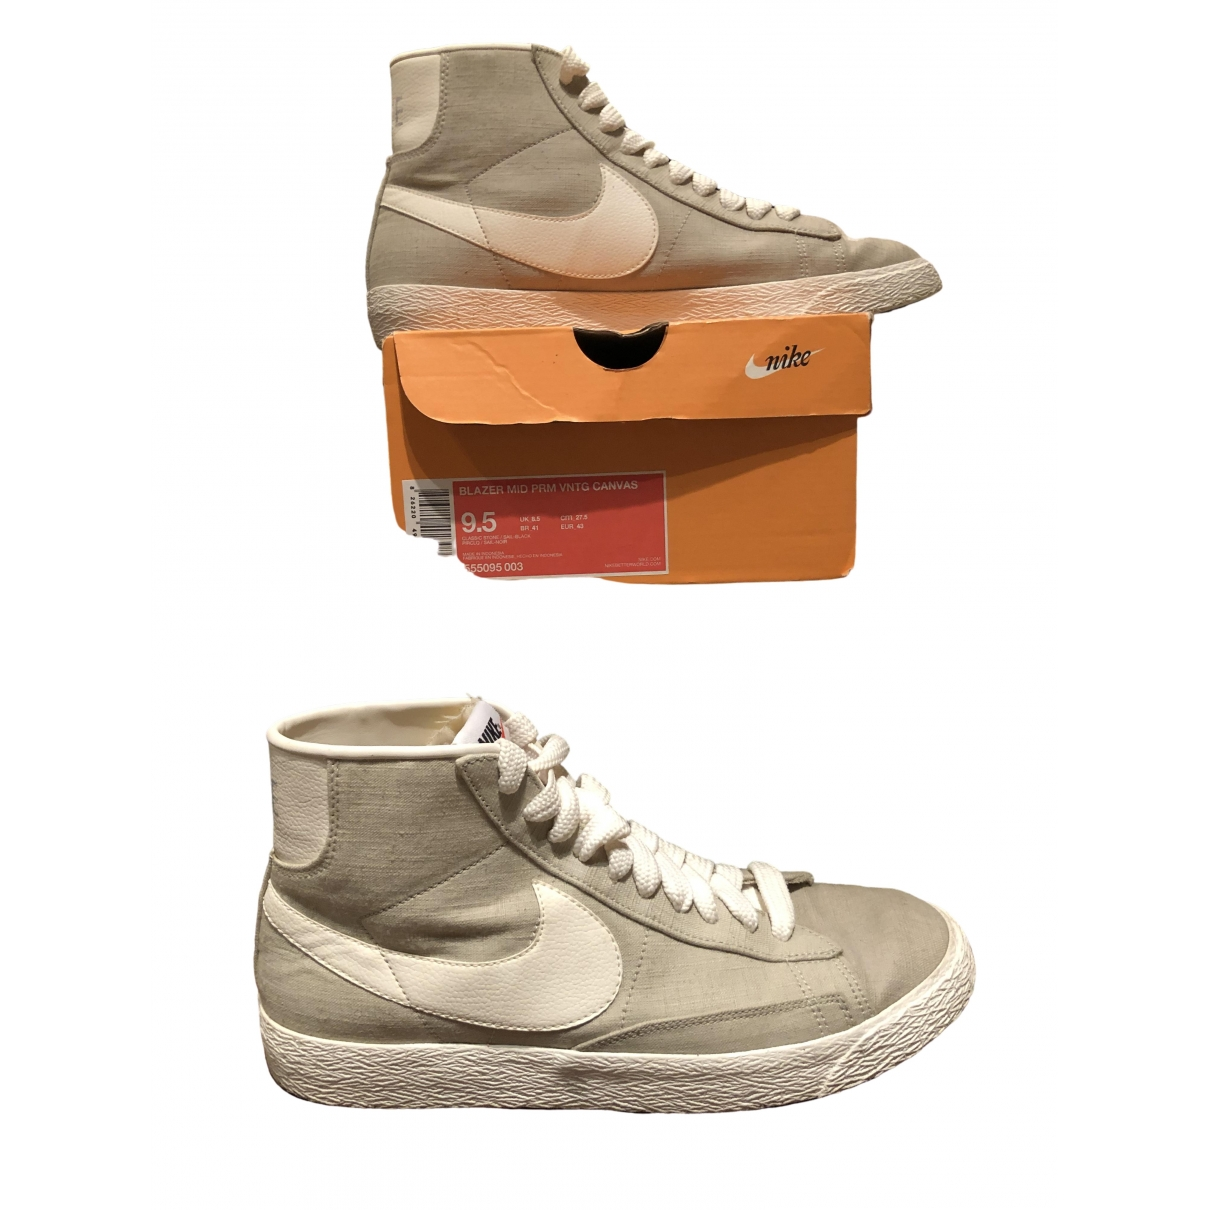 Nike Blazer Beige Cloth Trainers for Men 9.5 US